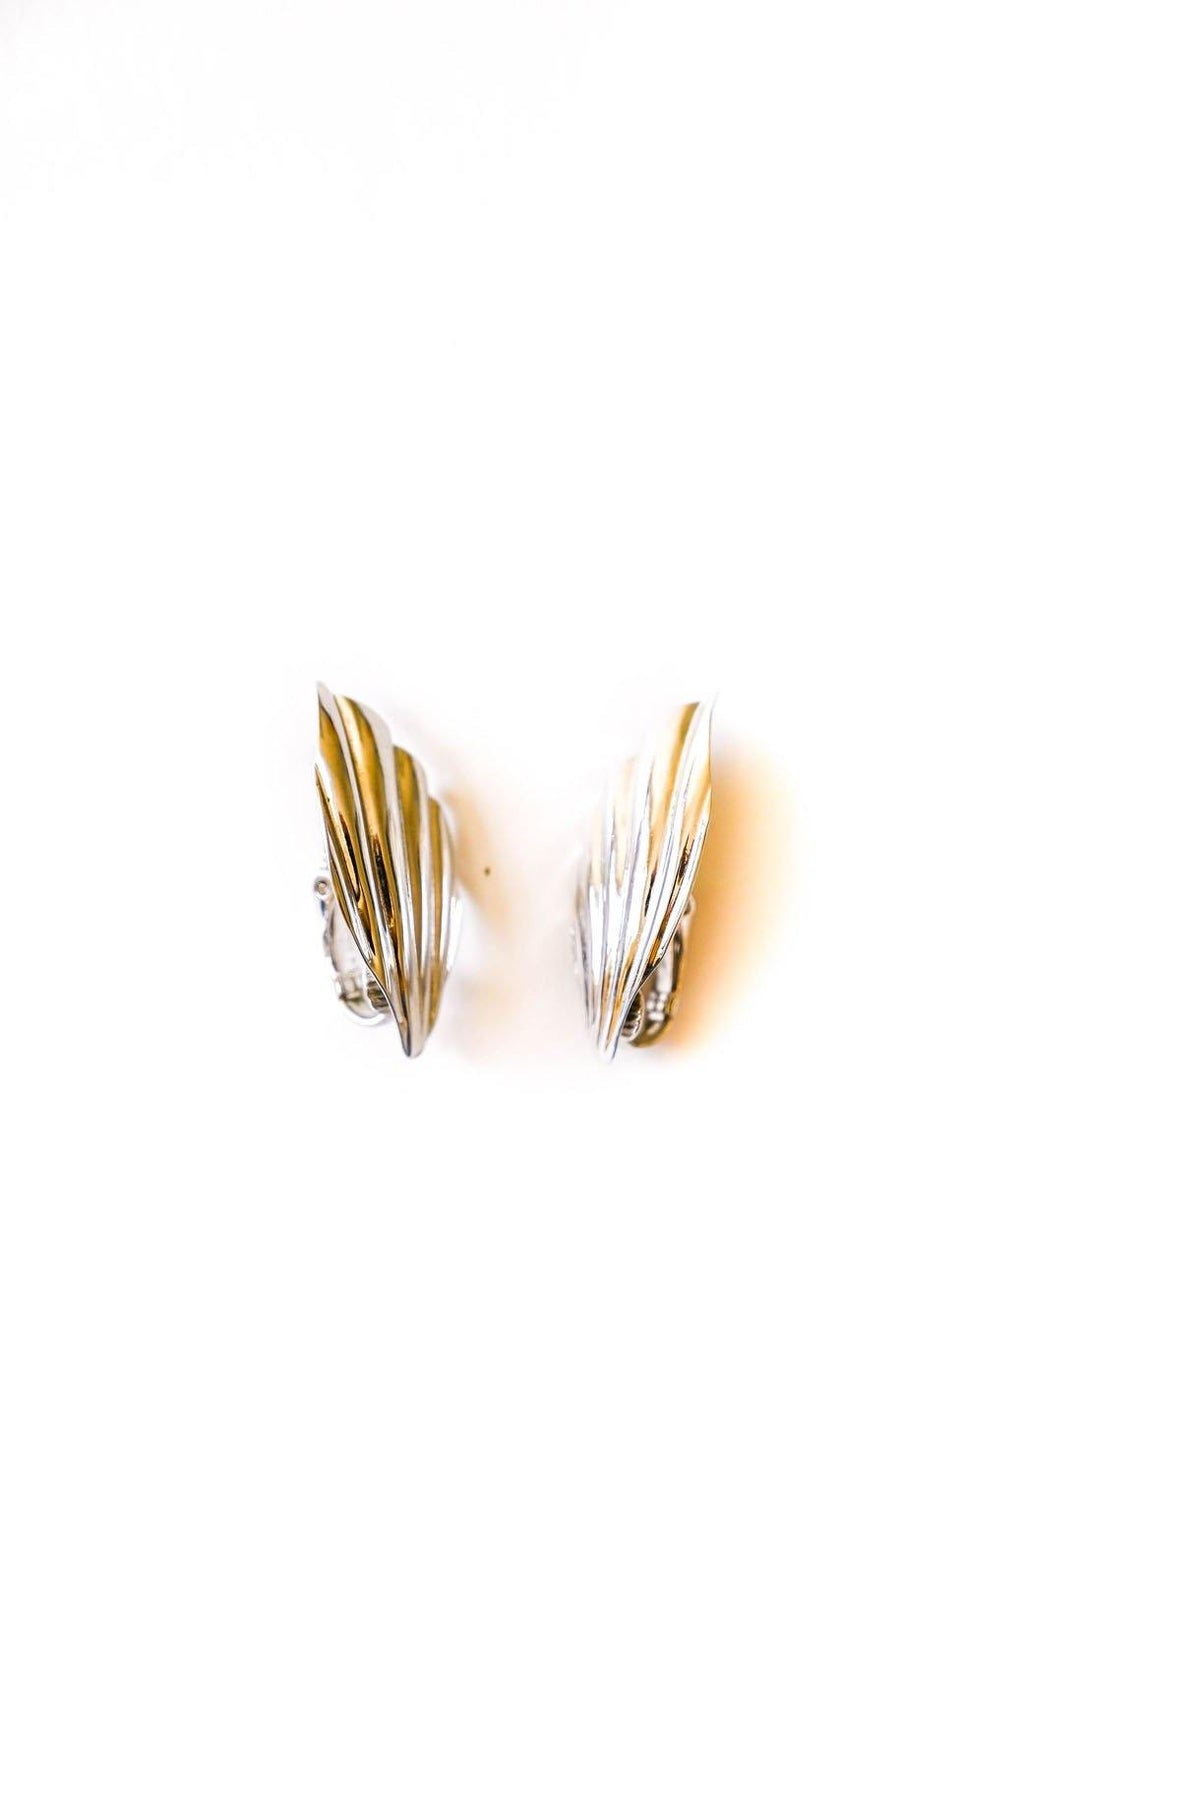 Swooping Silver Clip-on Earrings - Sweet & Spark